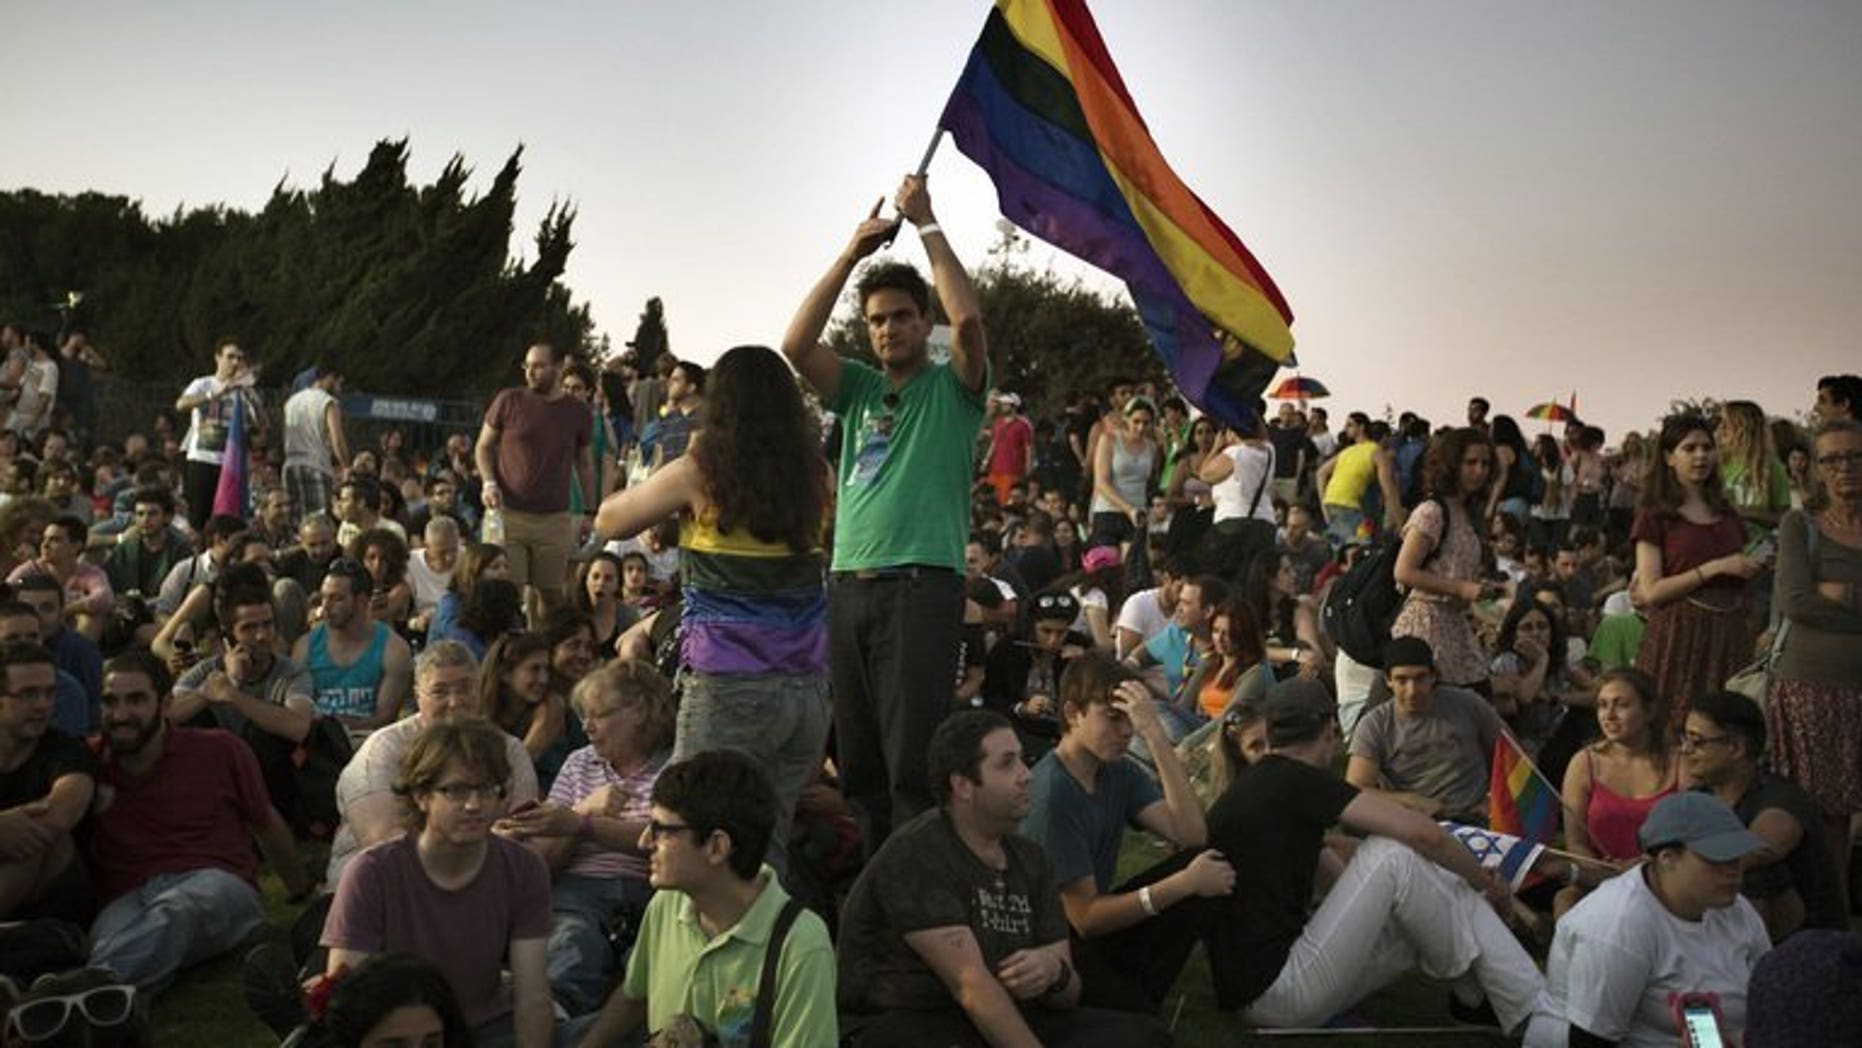 An Israeli waves a rainbow flag during the annual gay pride parade on August 1, 2013 in Jerusalem. A few thousand people marched in the gay pride parade in central Jerusalem without any serious incidents on Thursday, police said.